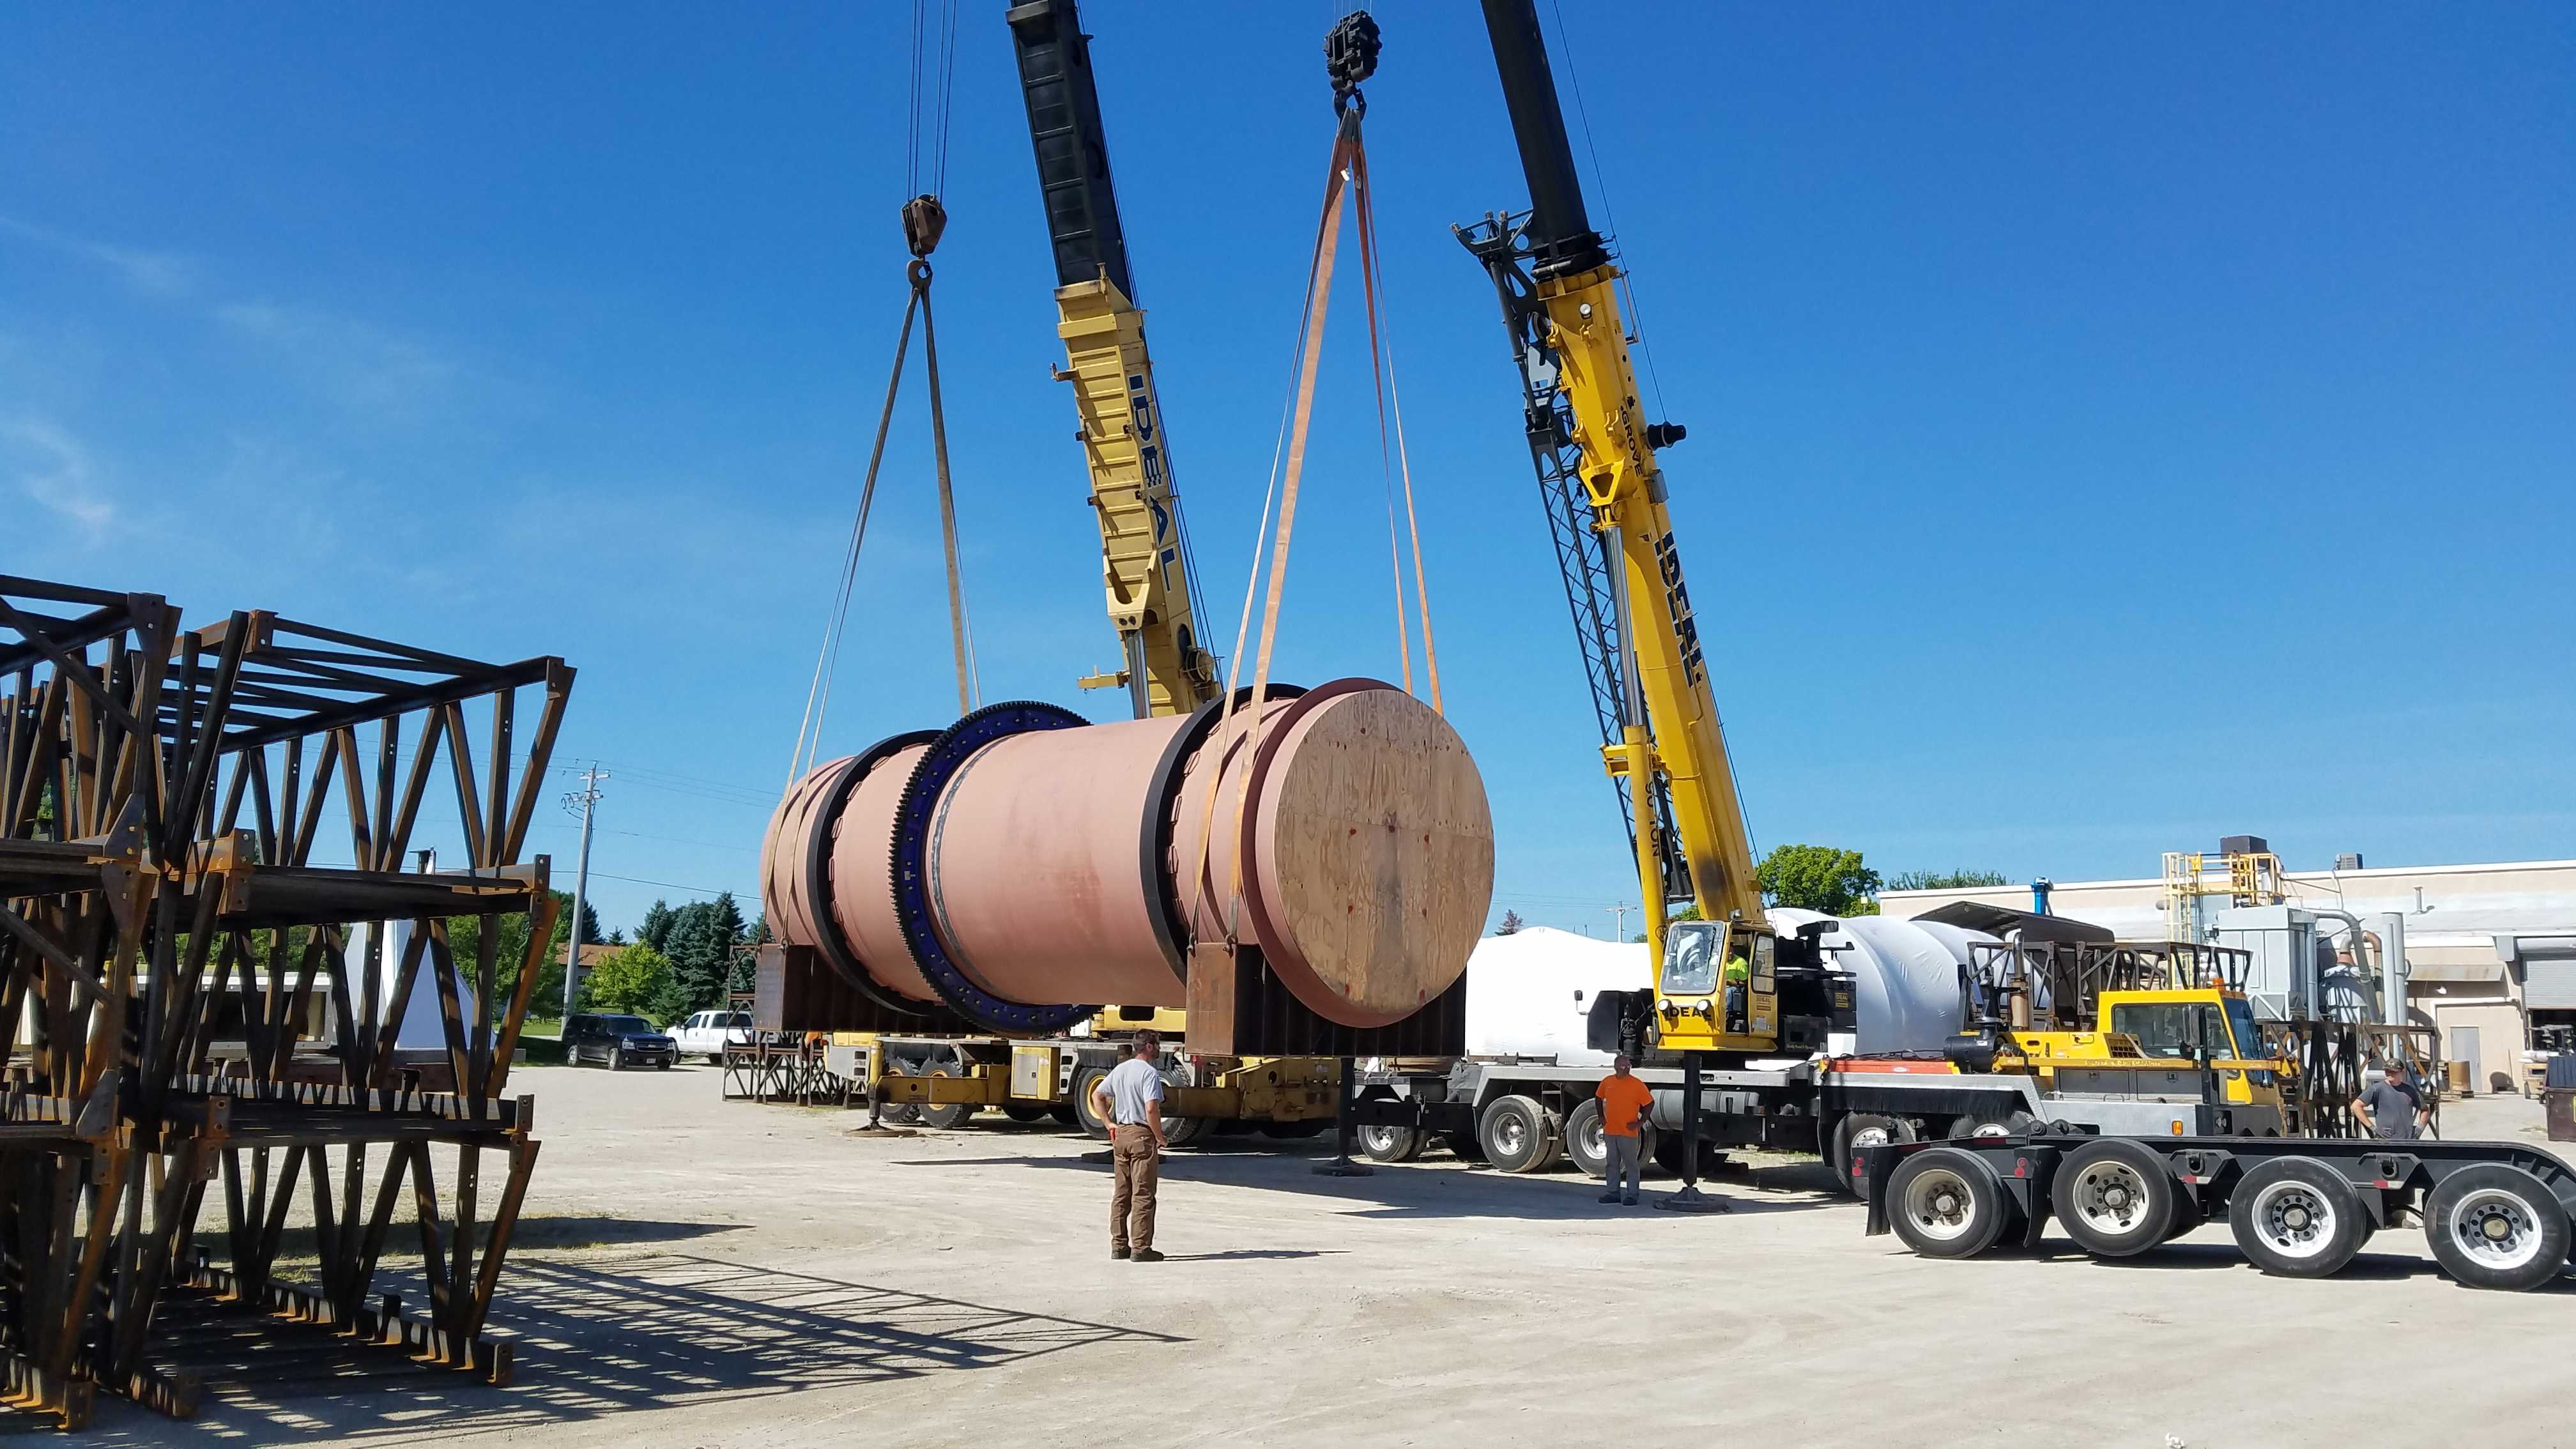 AM KING SELLS UNUSED METSO 2800 HP BALL MILL FOR PROJECT IN SOUTH AMERICA